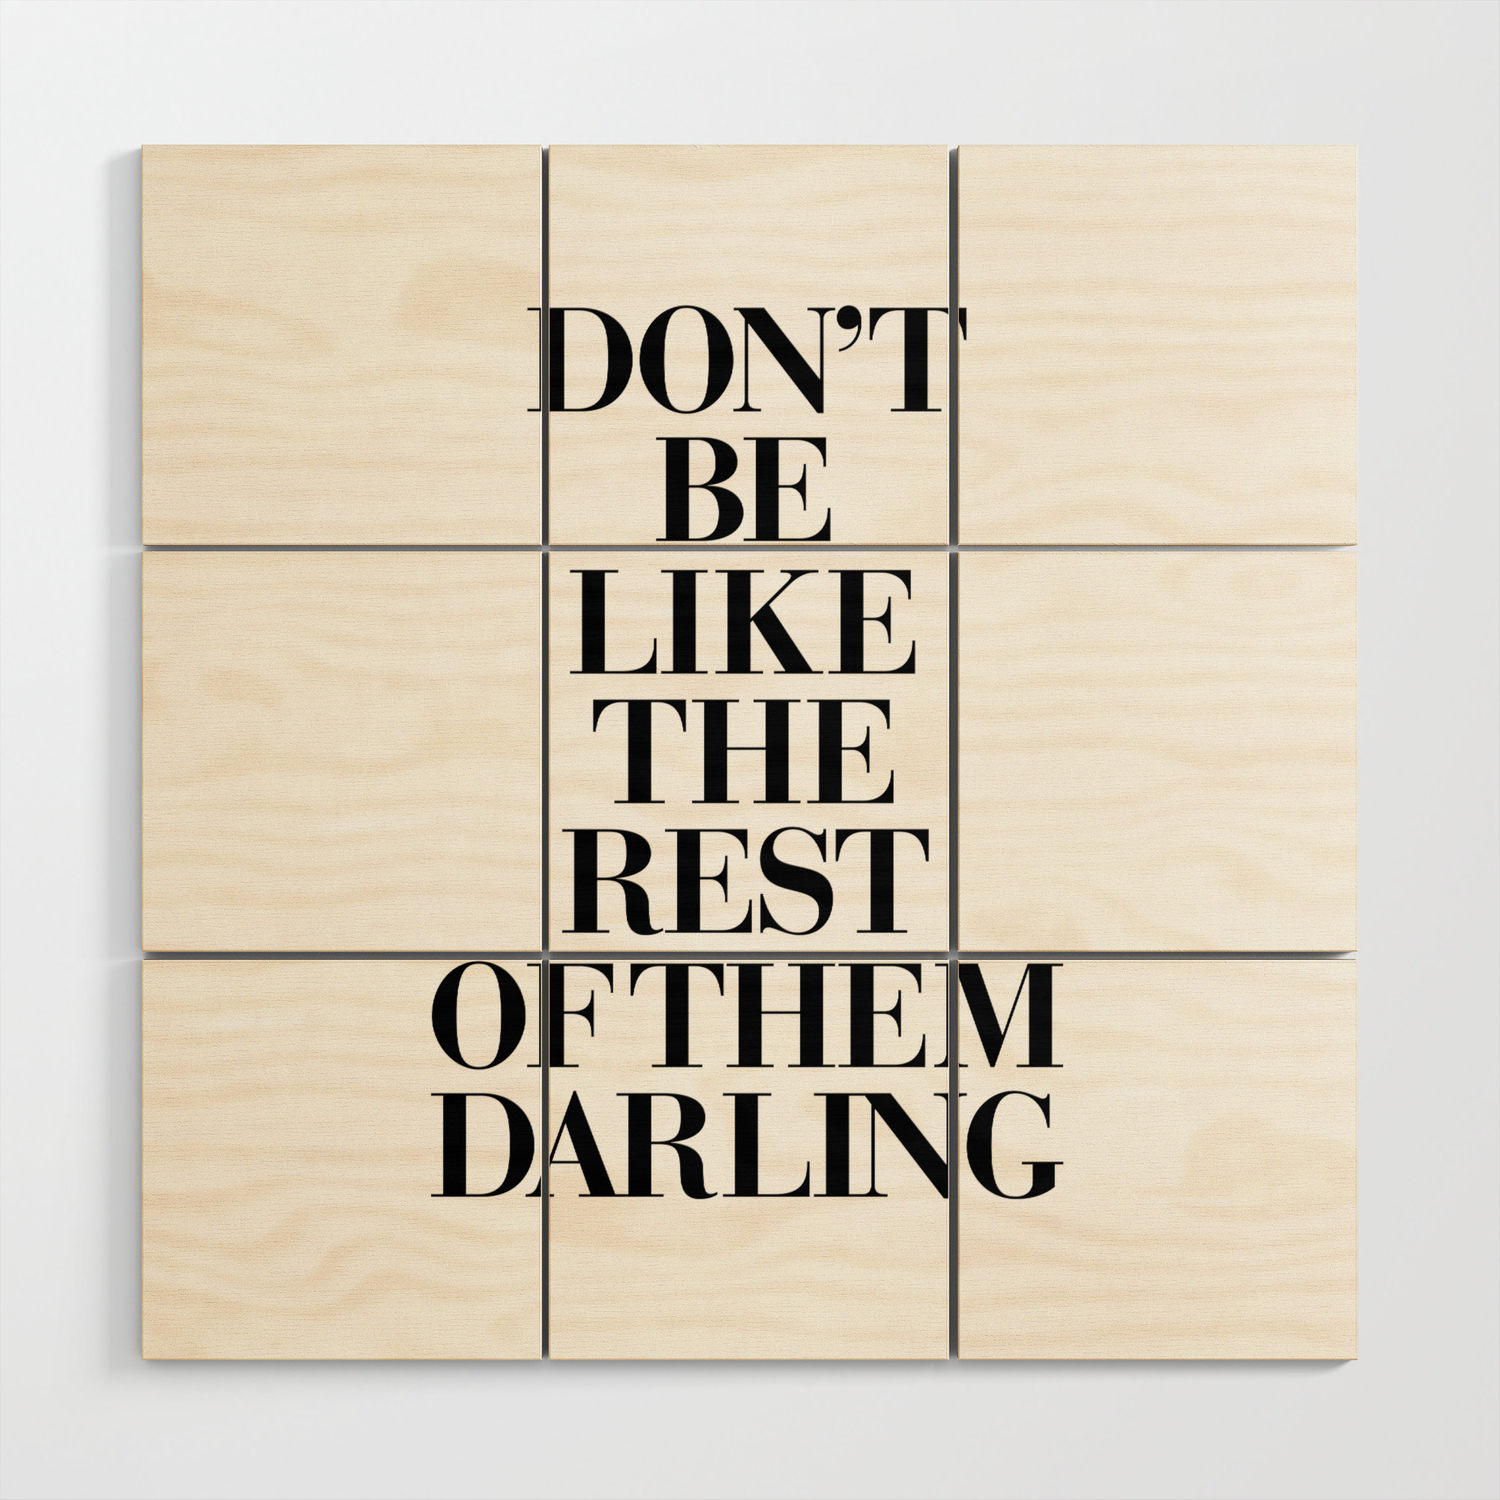 Wall Art Dont be like the rest of them darling  black text Wall Print  Decor